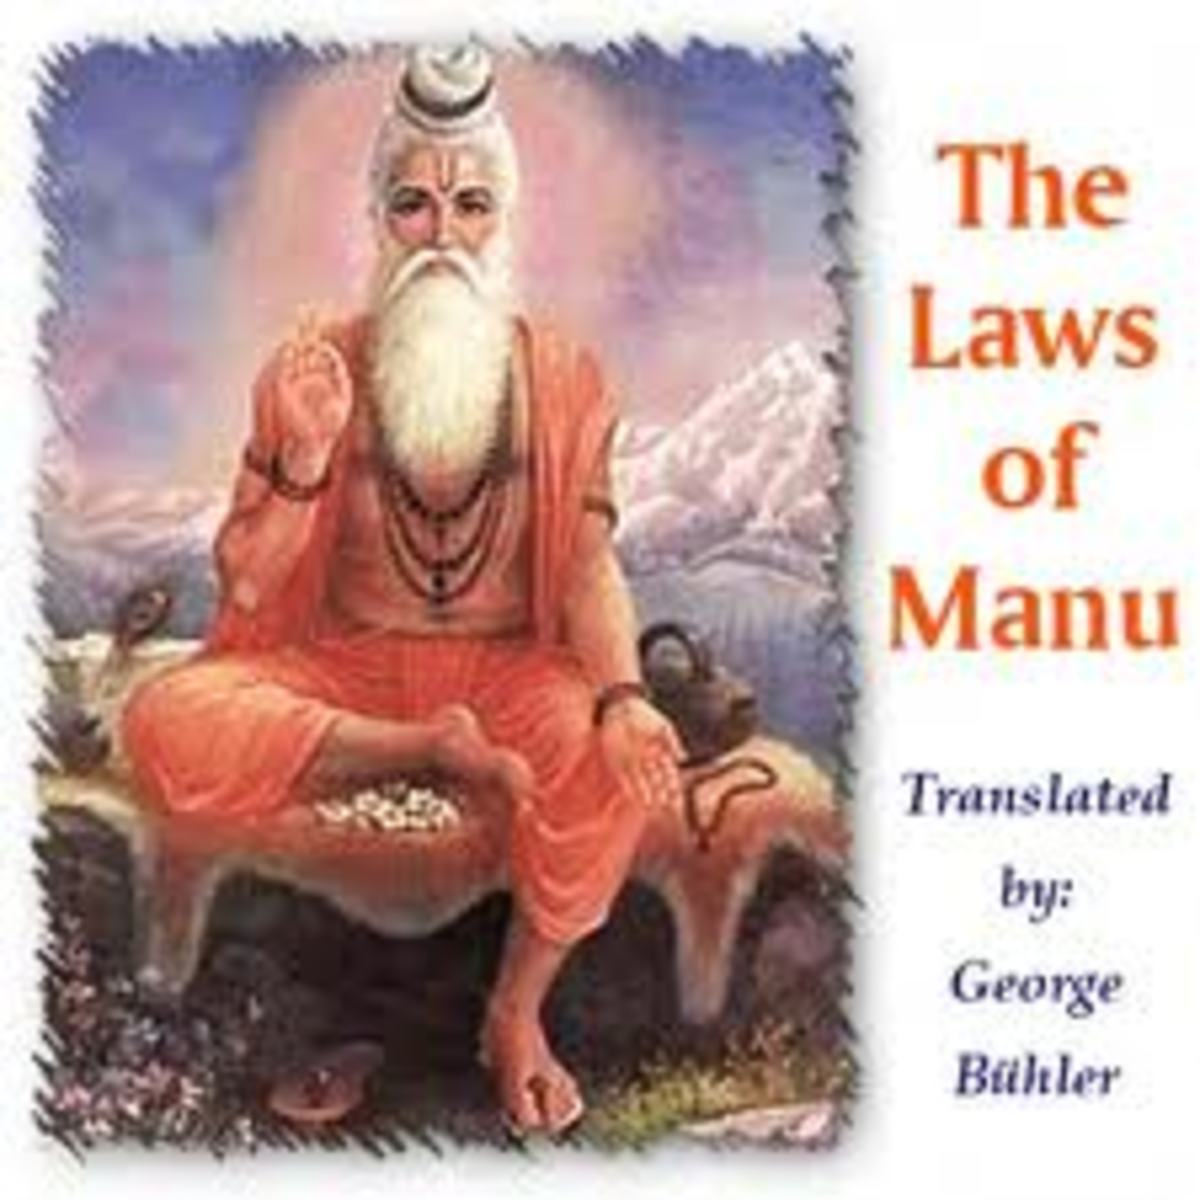 The Laws of Manu is the Indian religious book, where one would be able to understand those Indian religions. Is is different from the bible, as it is a complete different setup.